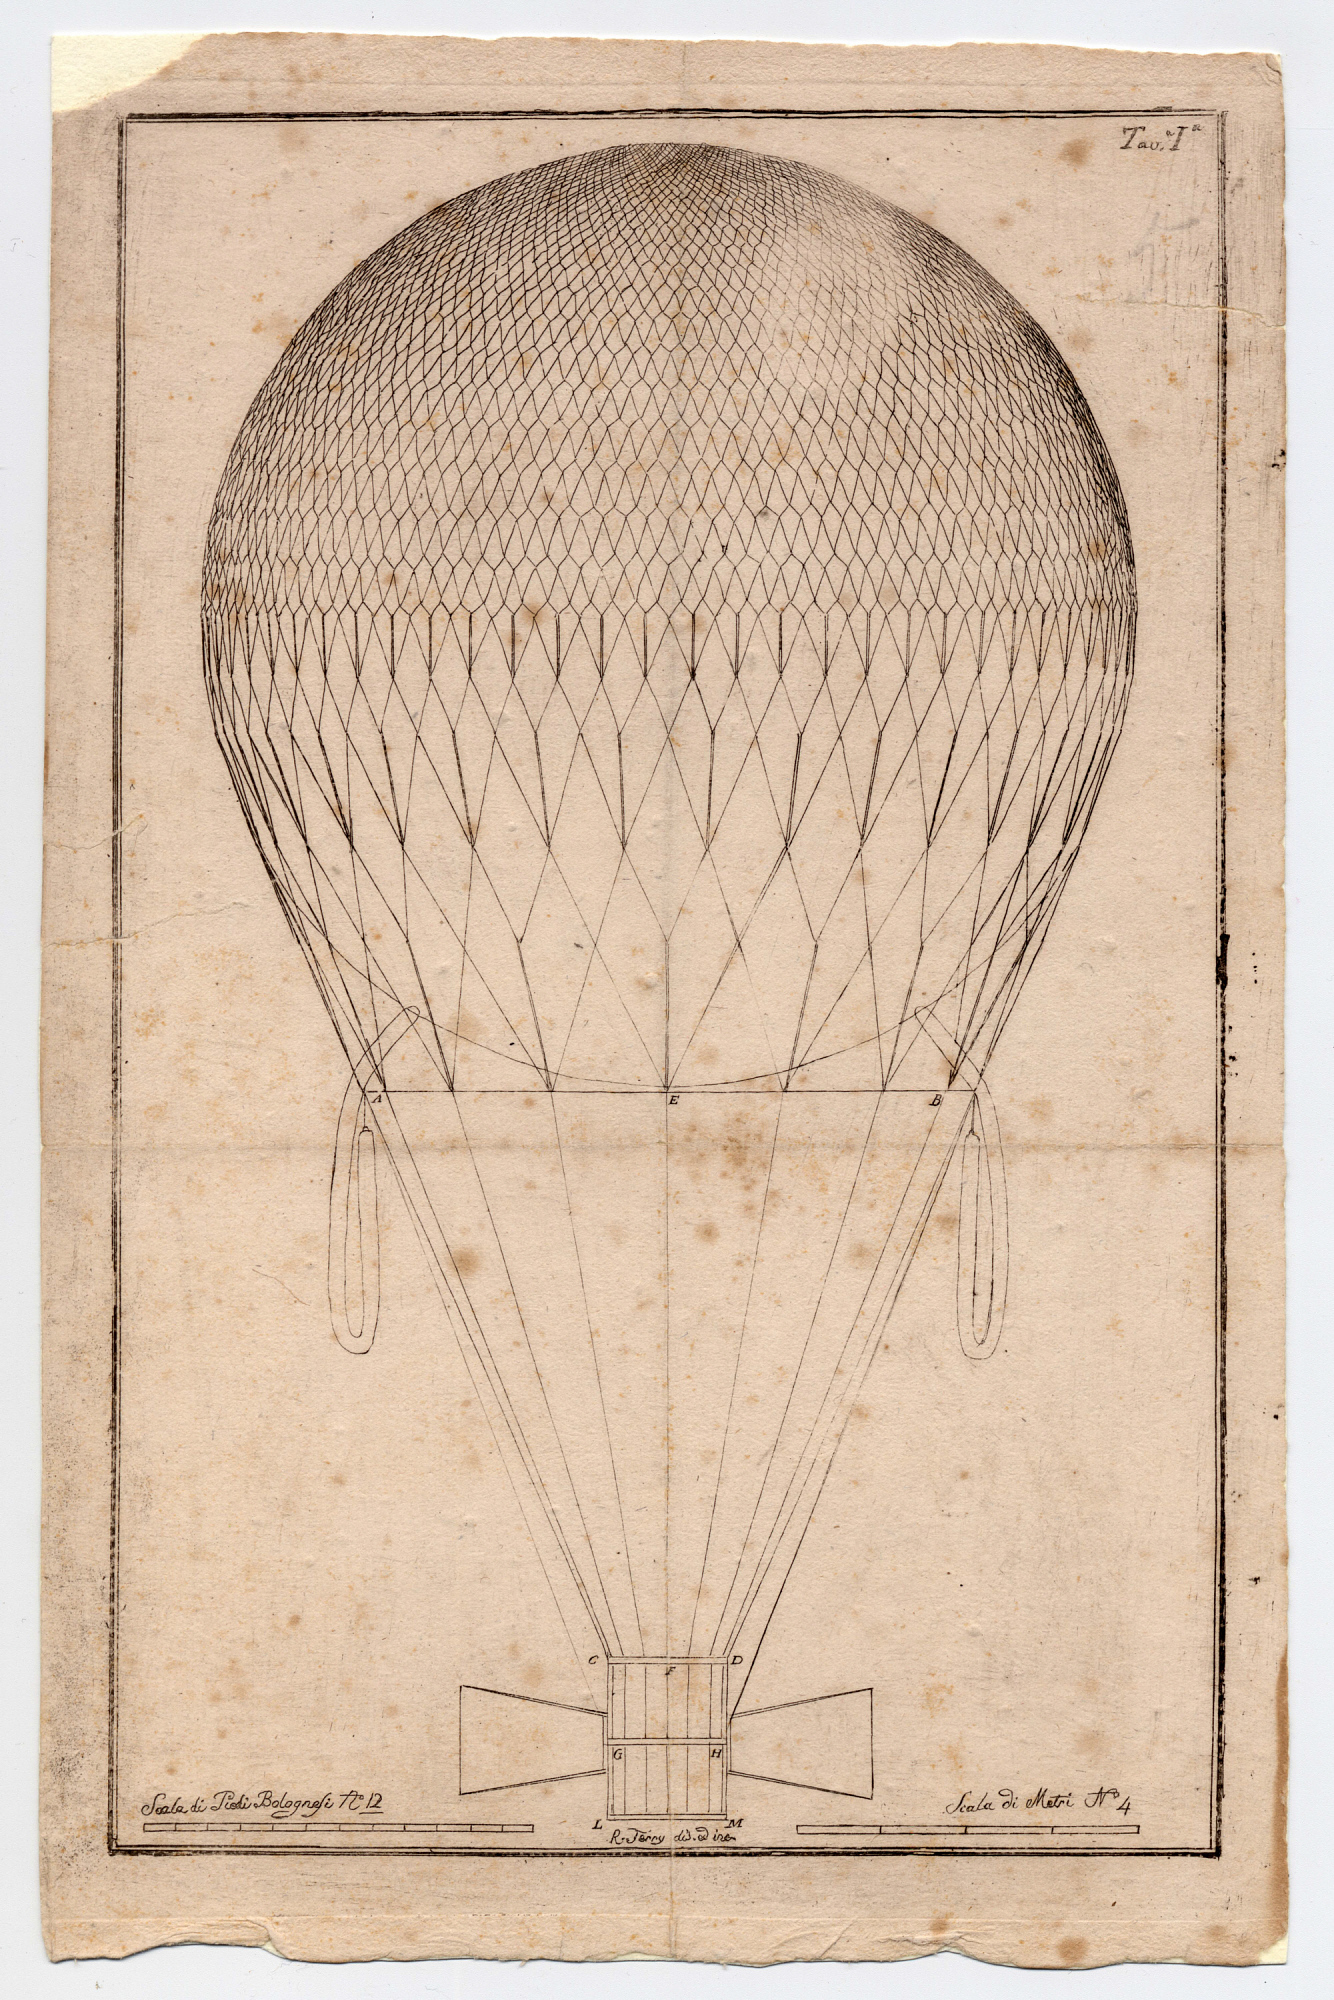 images for Zambeccari Balloon